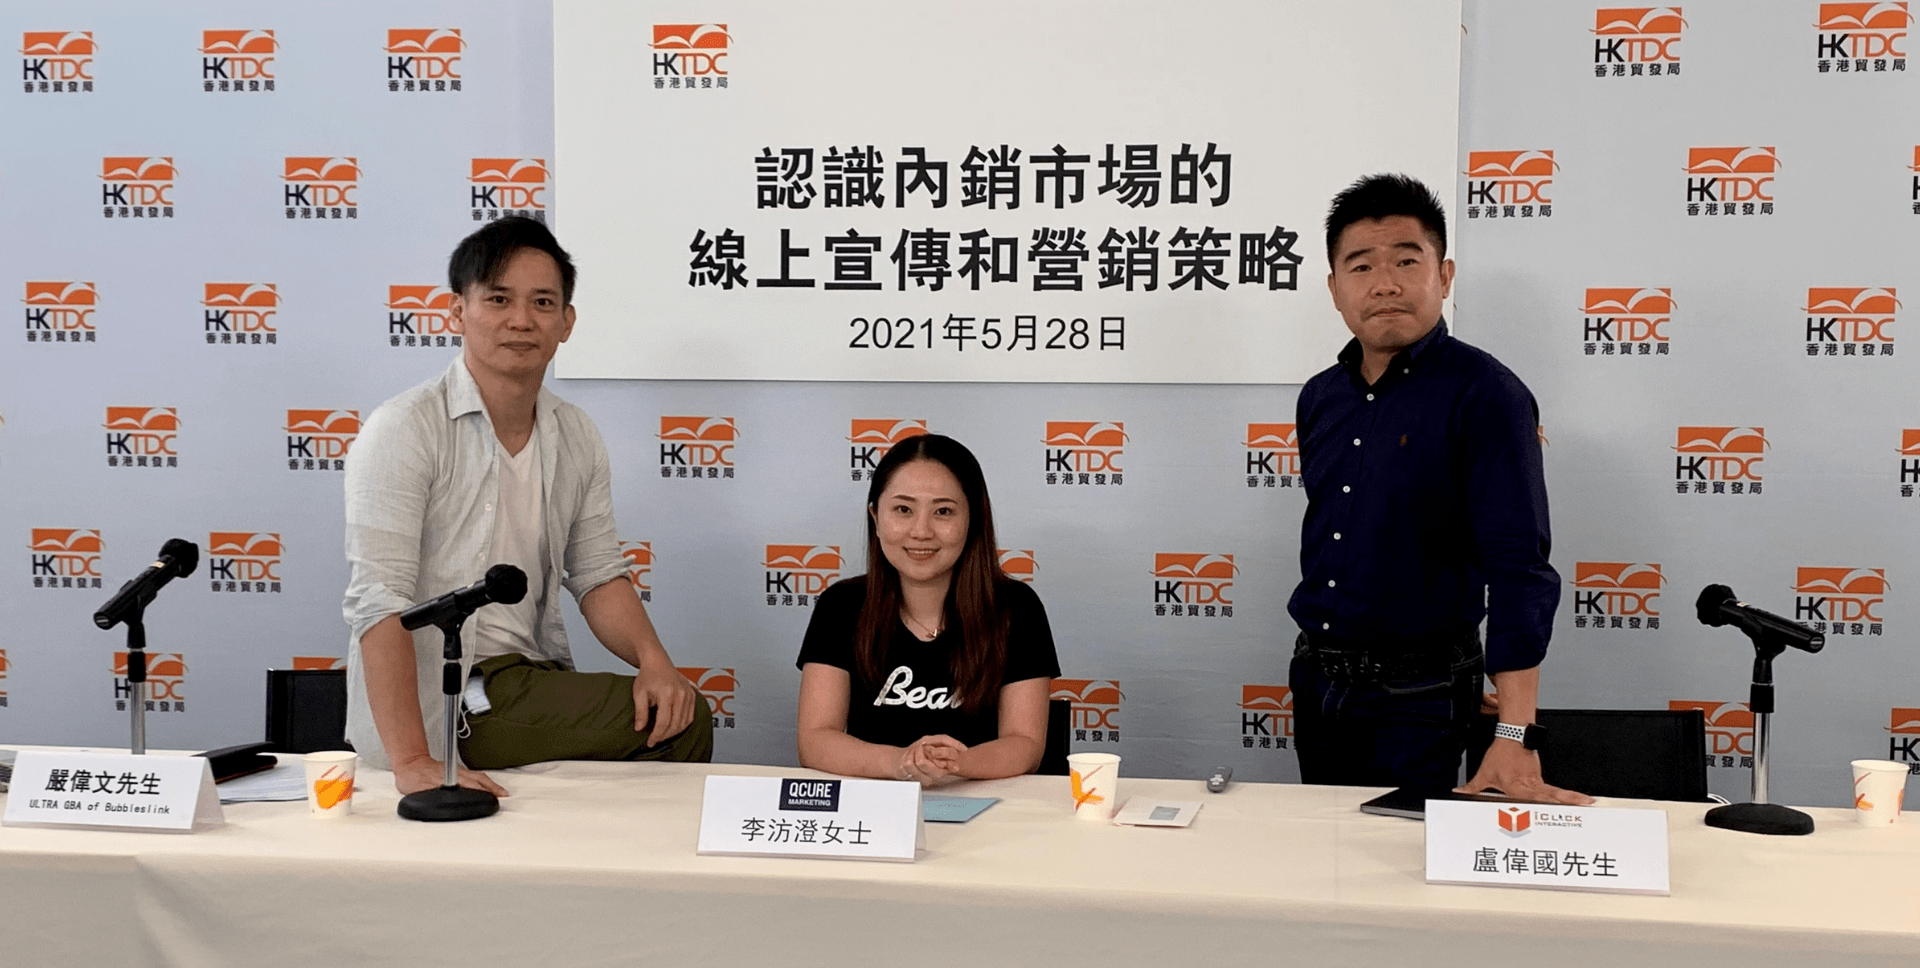 """iClick's Insightful Live Panel Discussion – """"News trends in China Digital Marketing"""" Masterclass"""